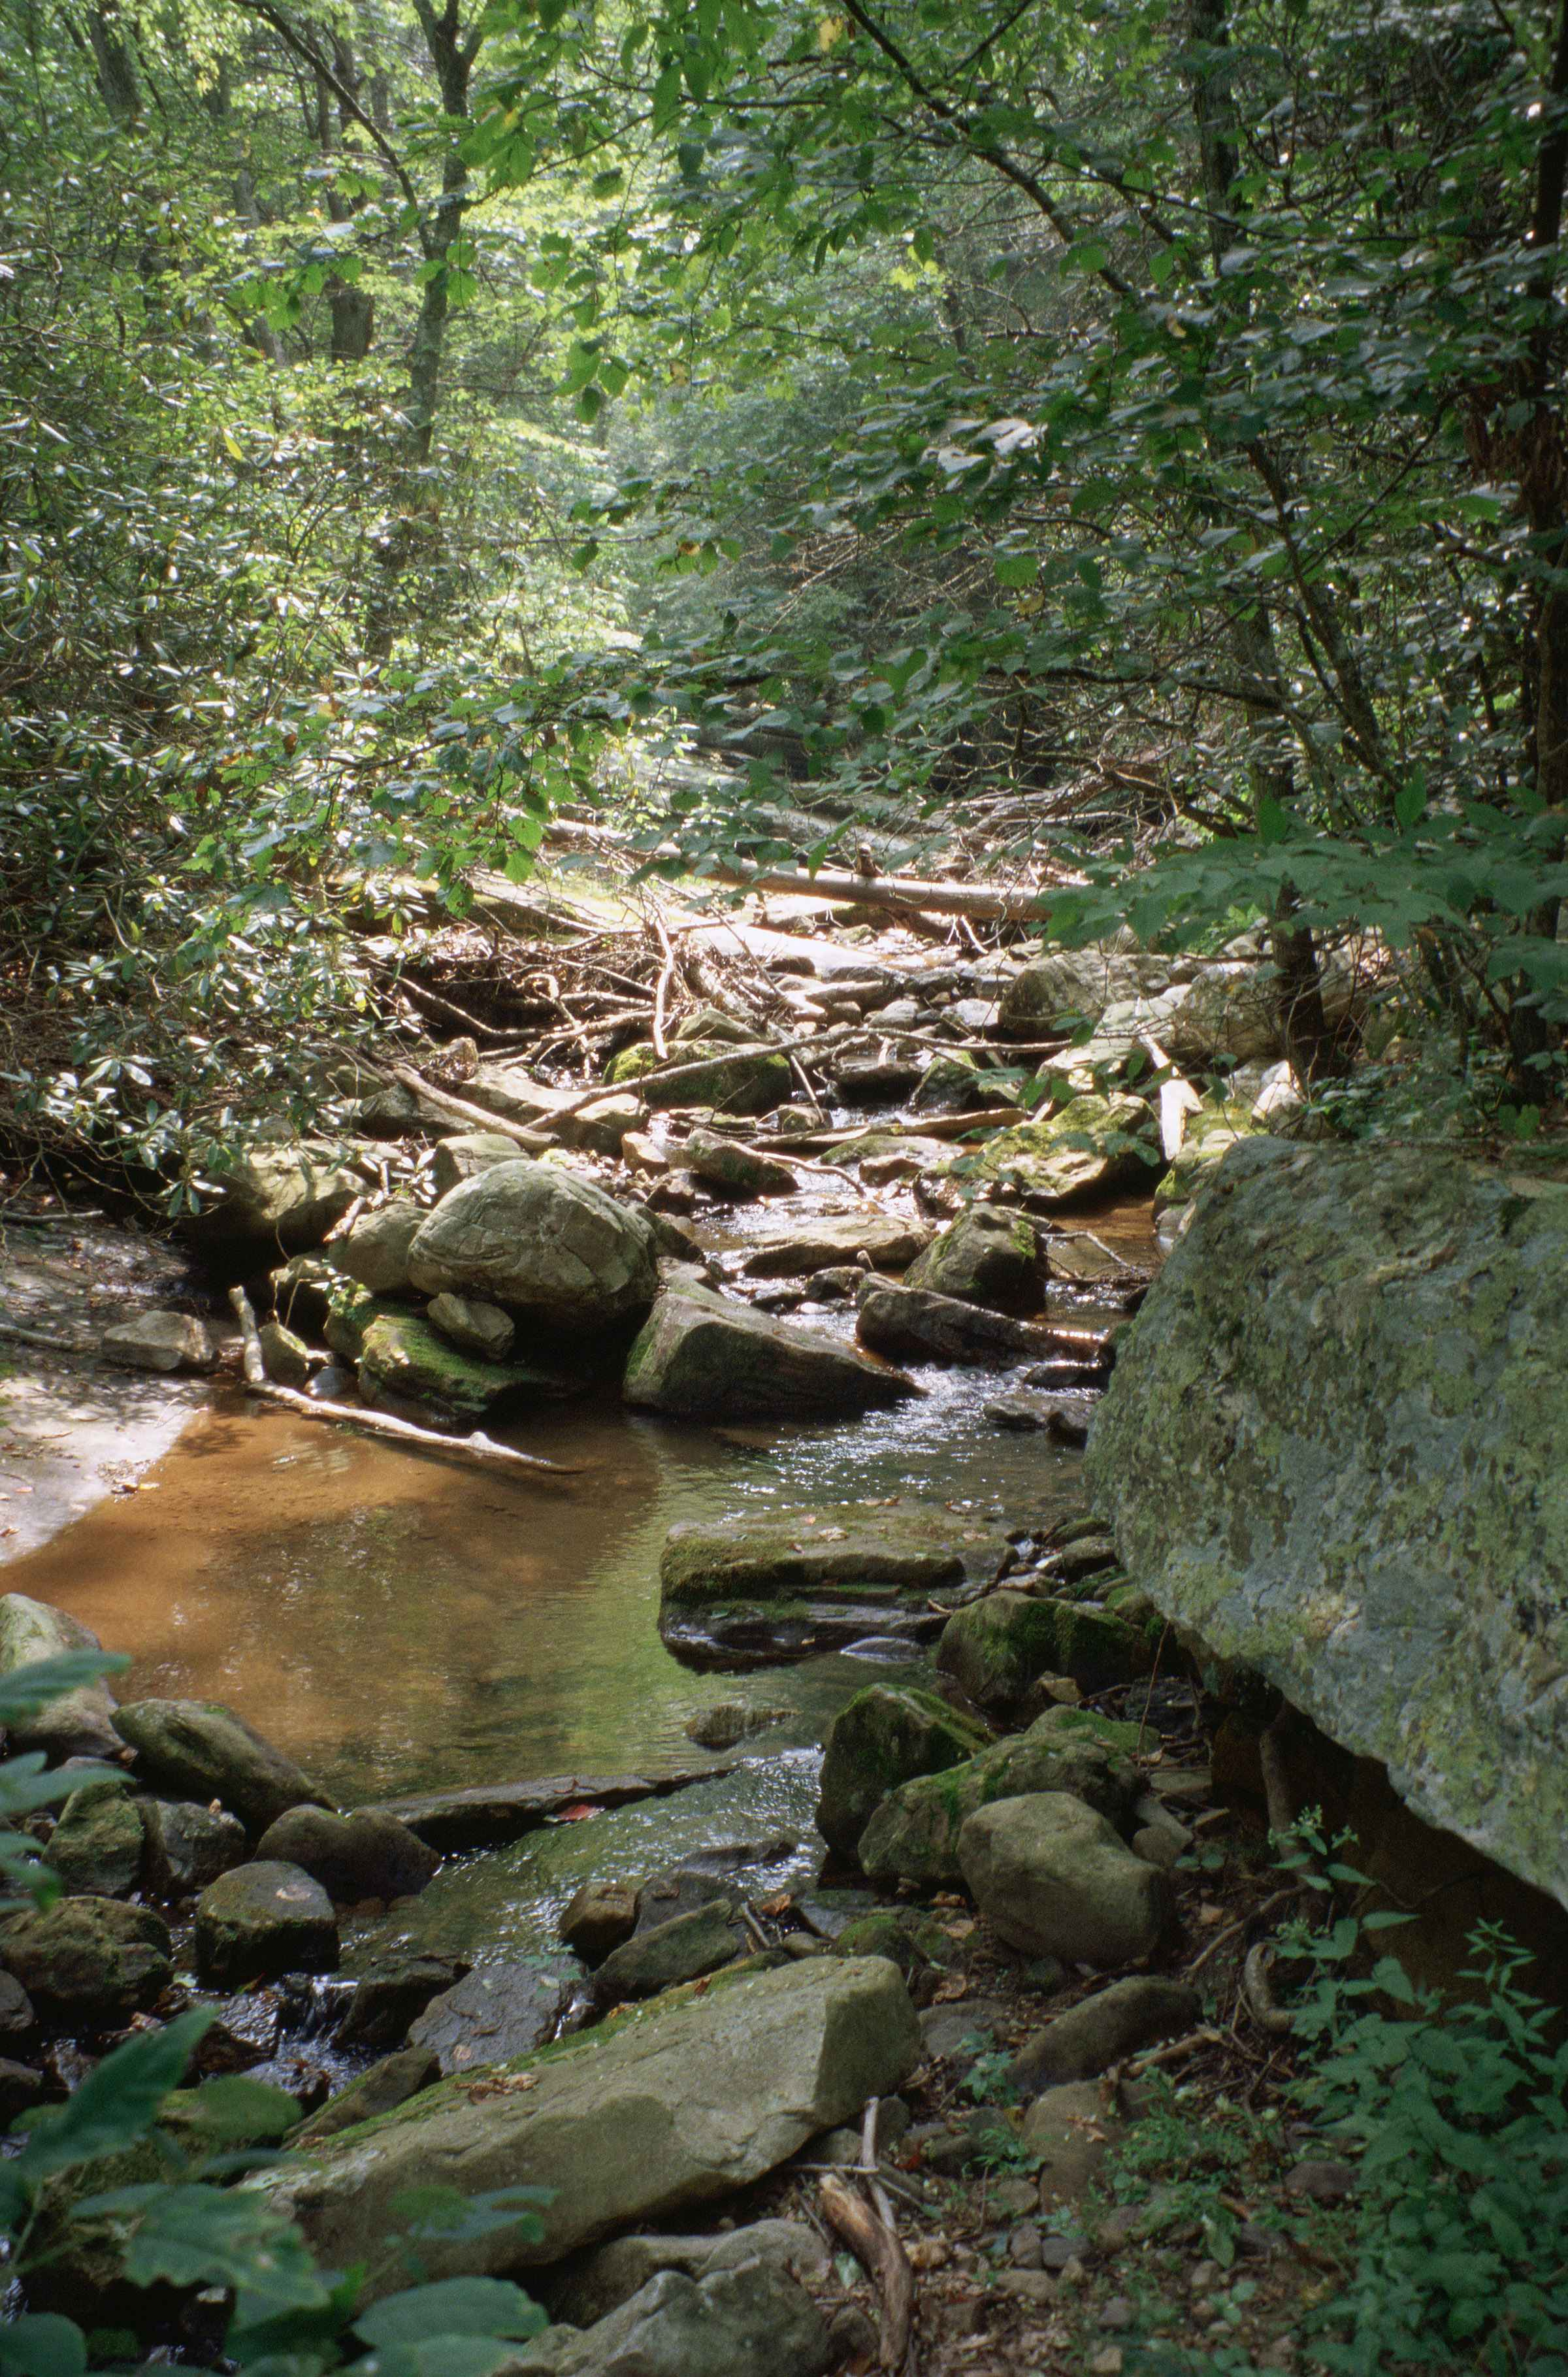 33 12 50 20 >> Free picture: shallow, rocky, mountain, stream